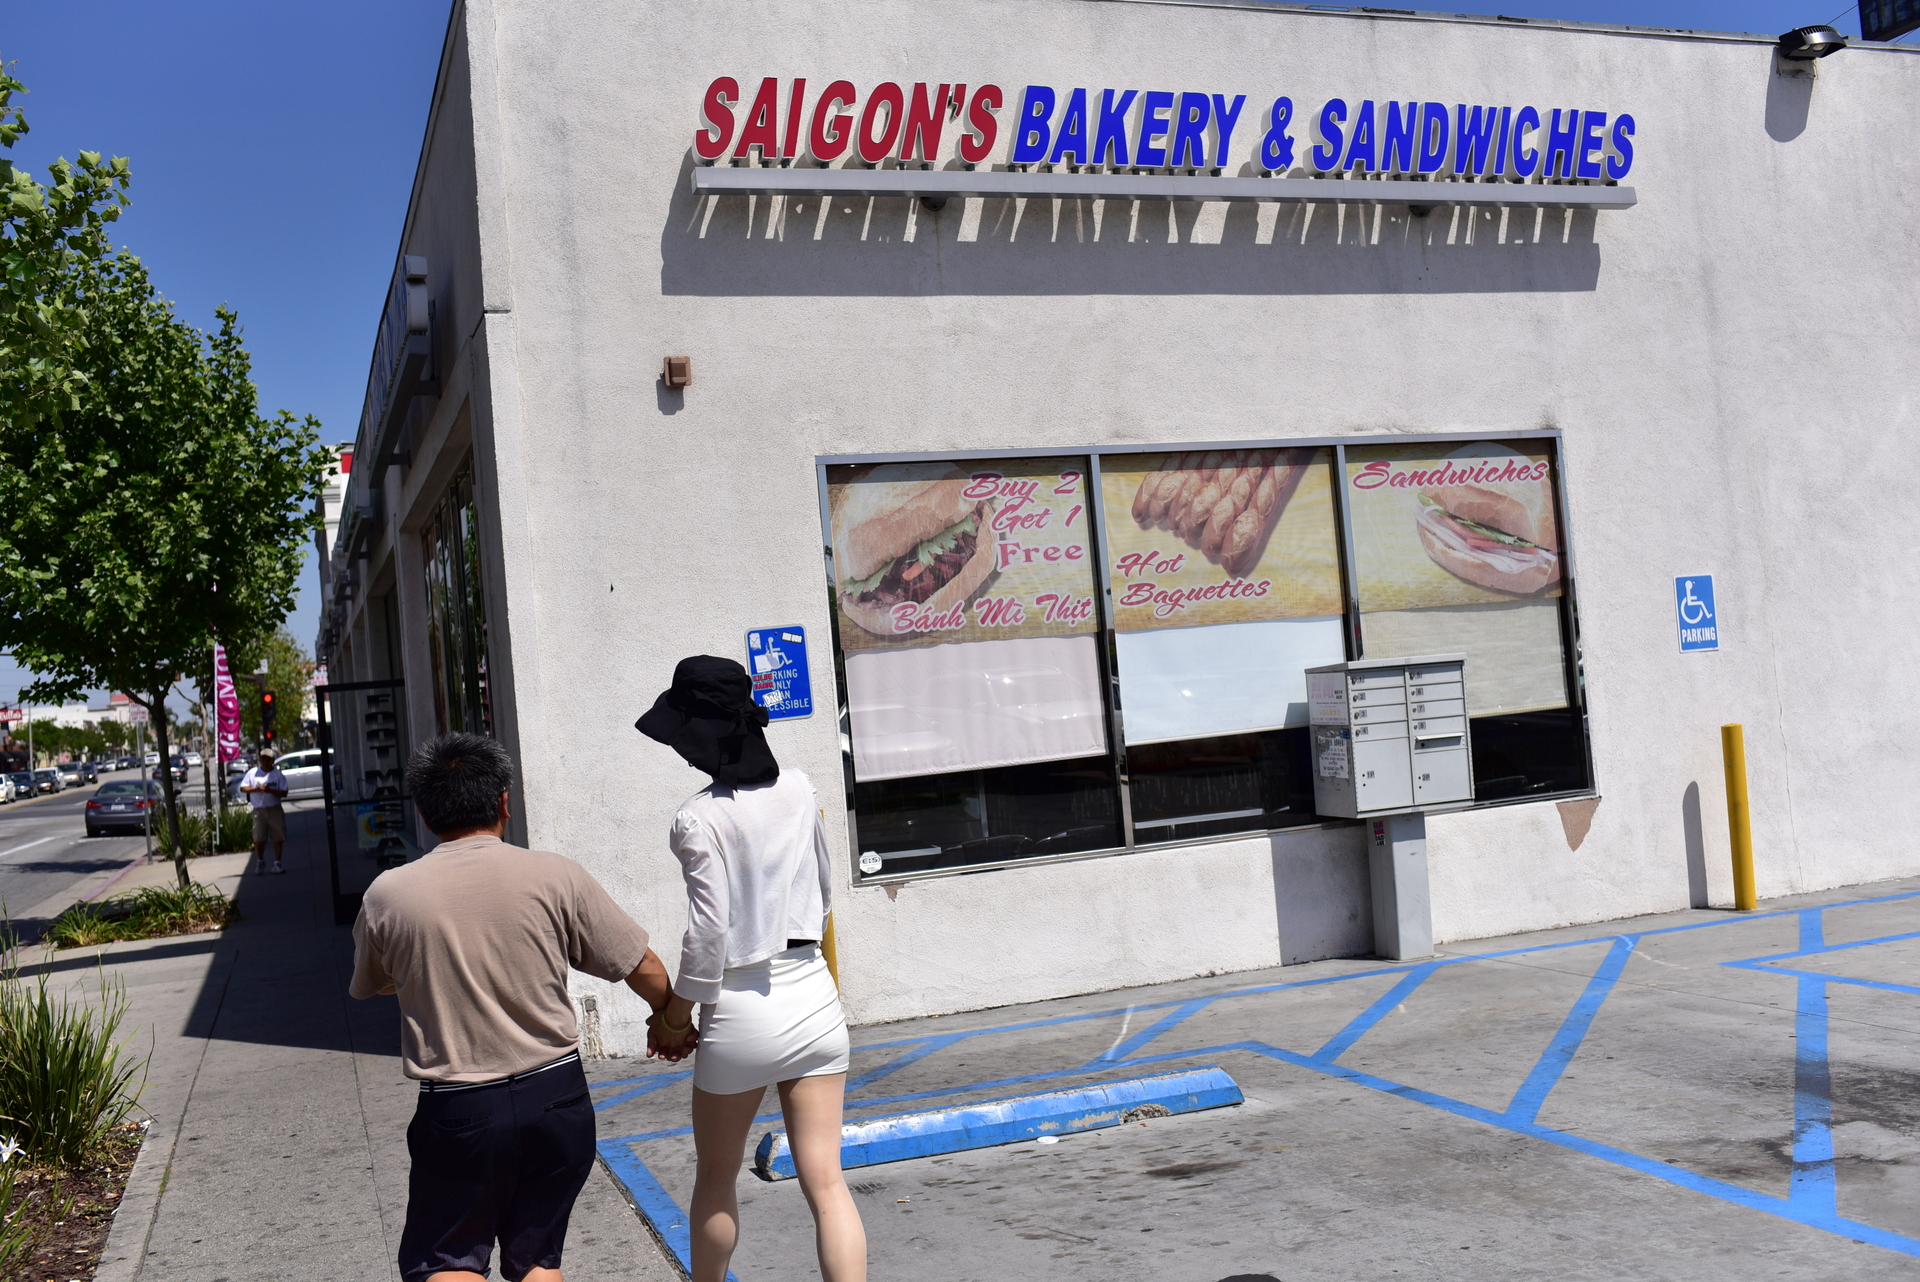 Saigon's Bakery on the corner of San Gabriel Blvd & Valley Blvd in New Taipei, CA